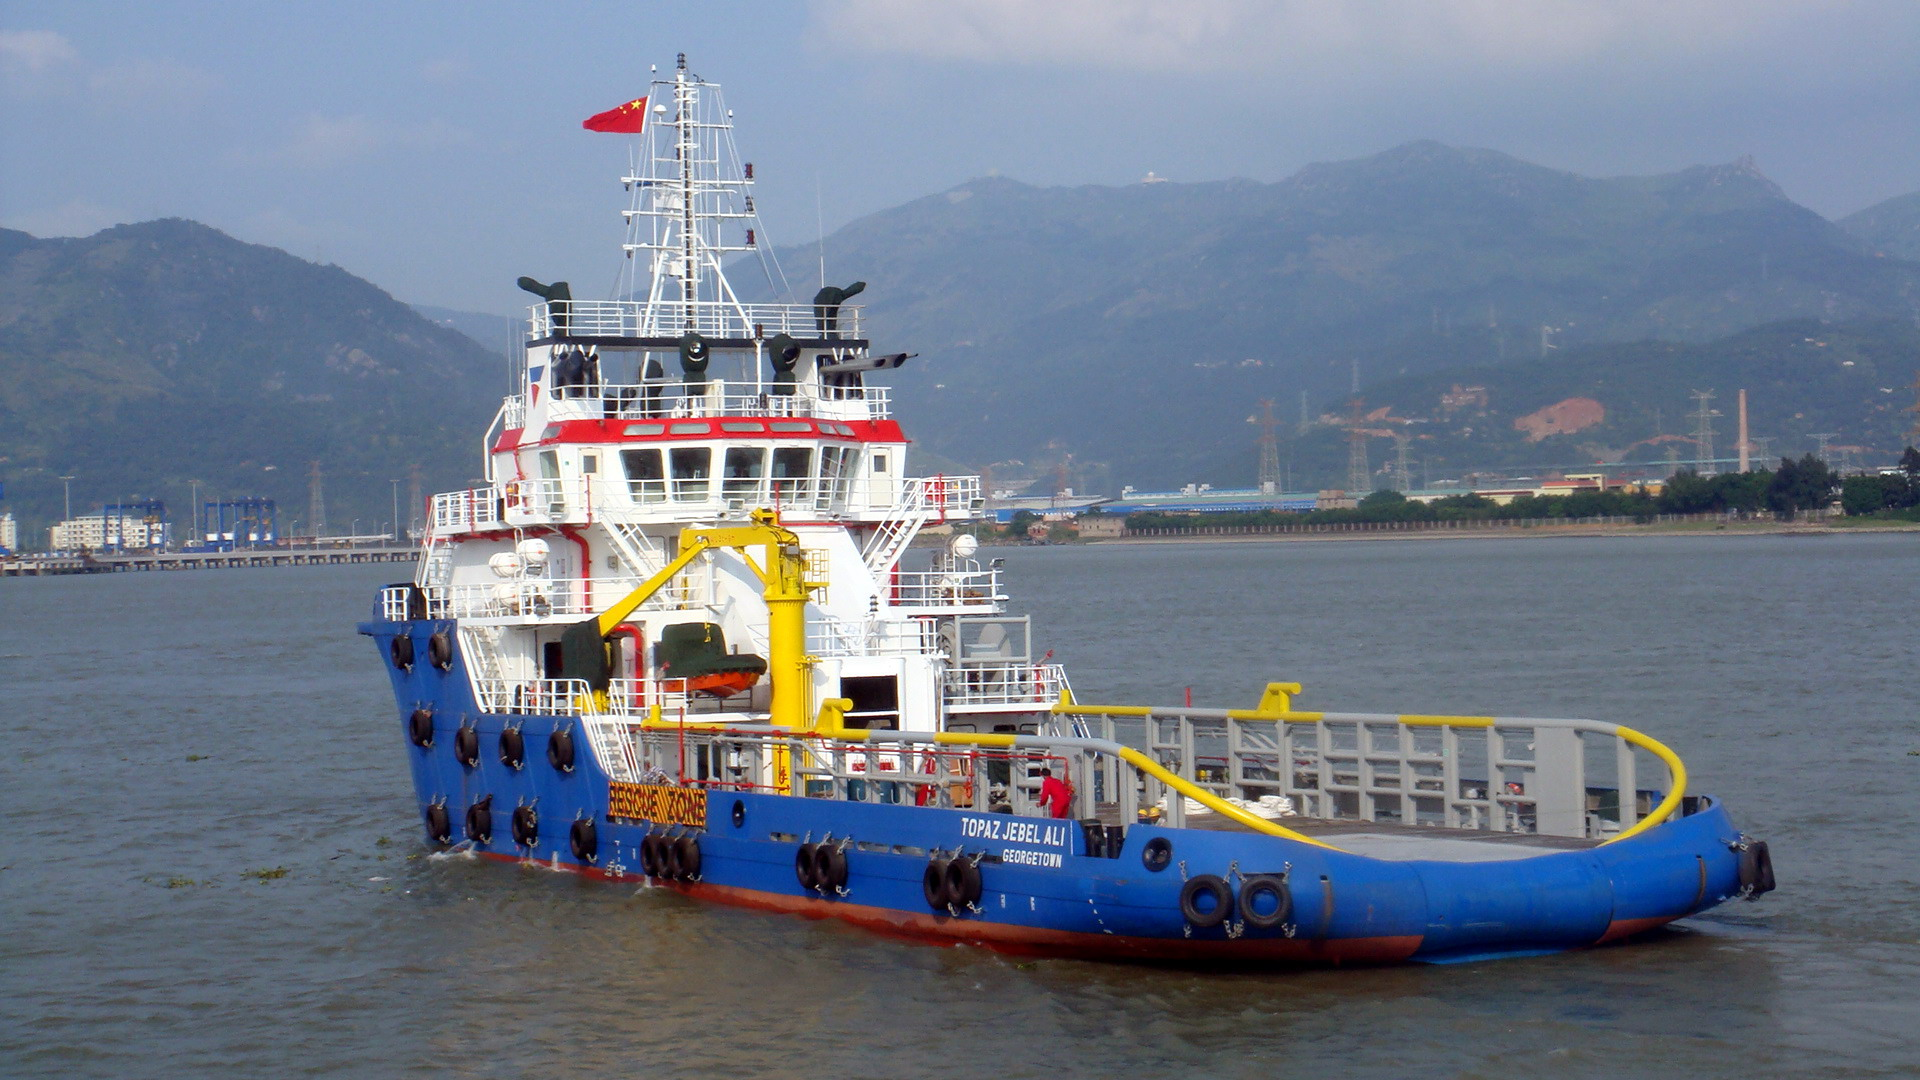 59m Anchor Handling Tug Supply Vessel, AHTS by Southeast